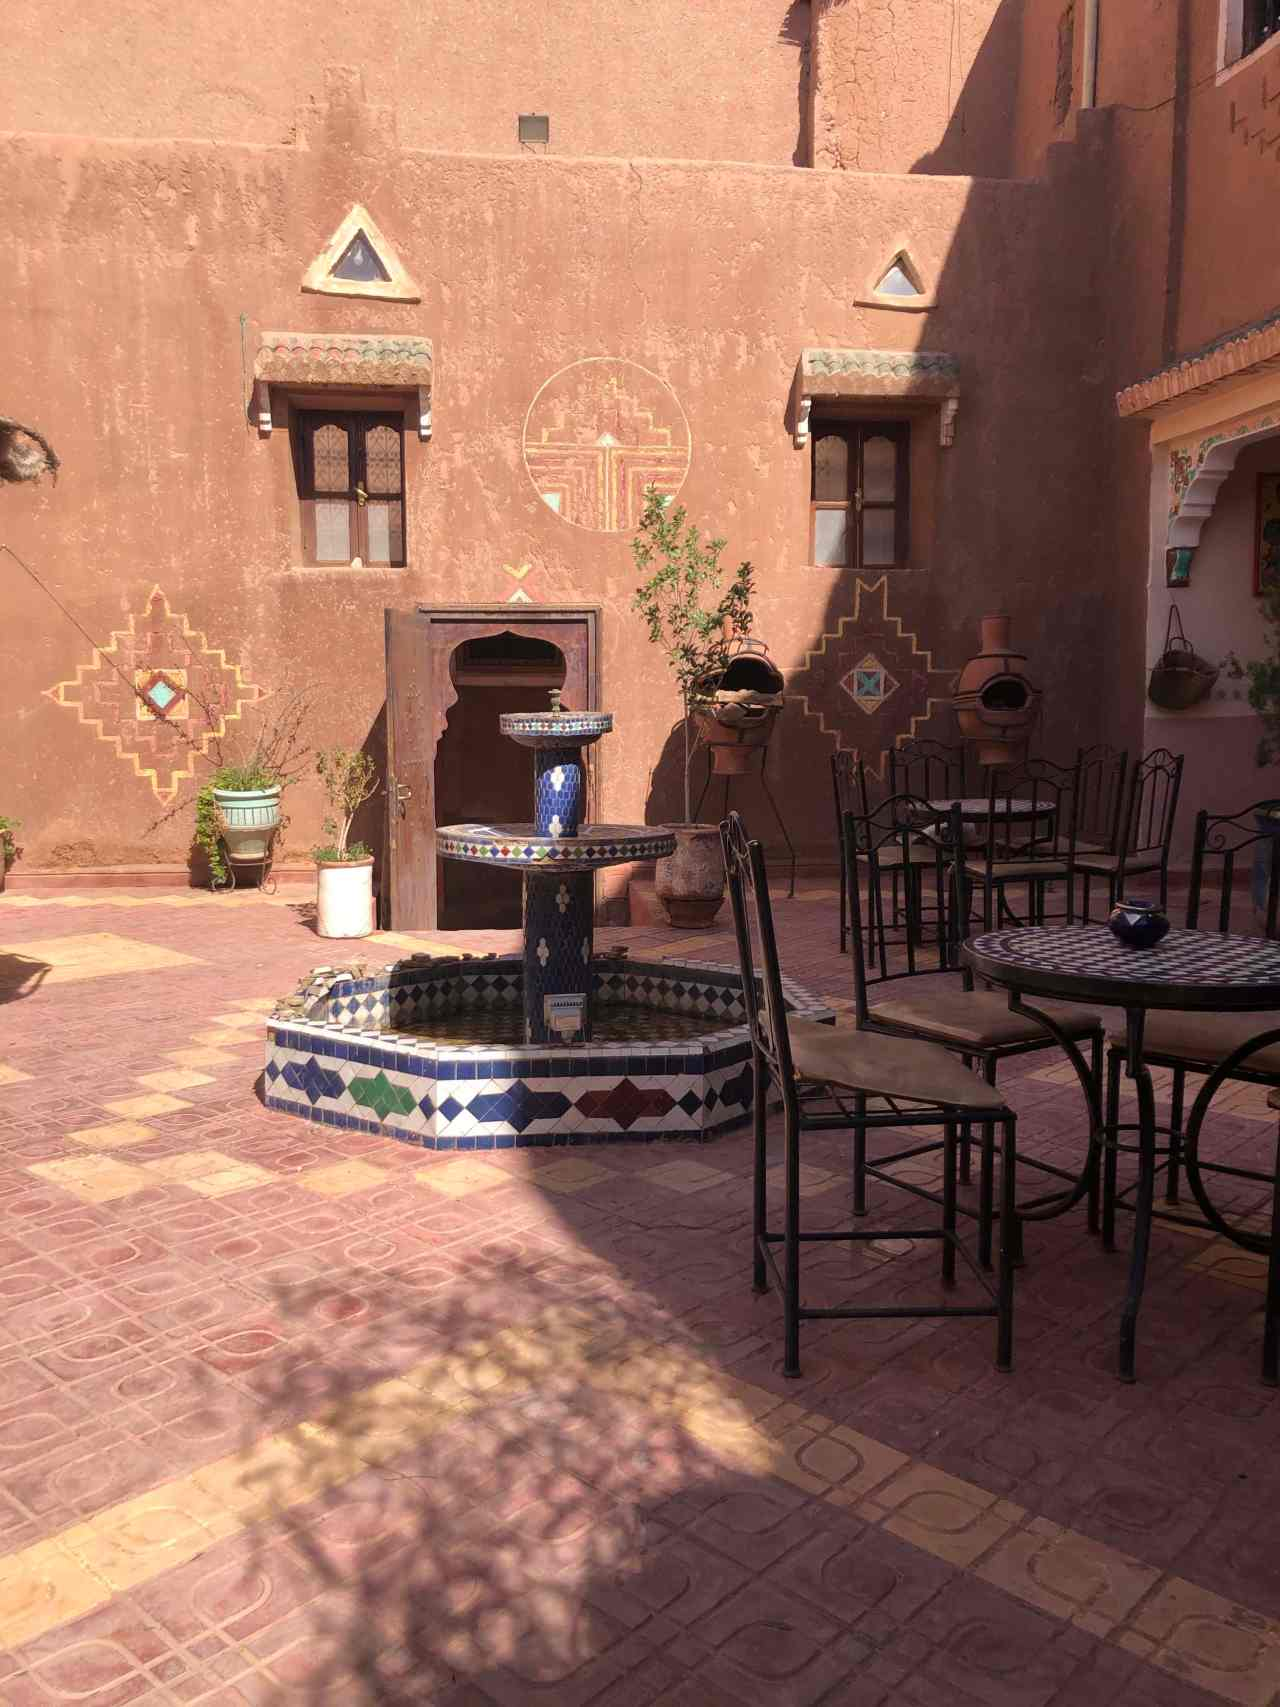 A deserted cafe in Ouarzazate